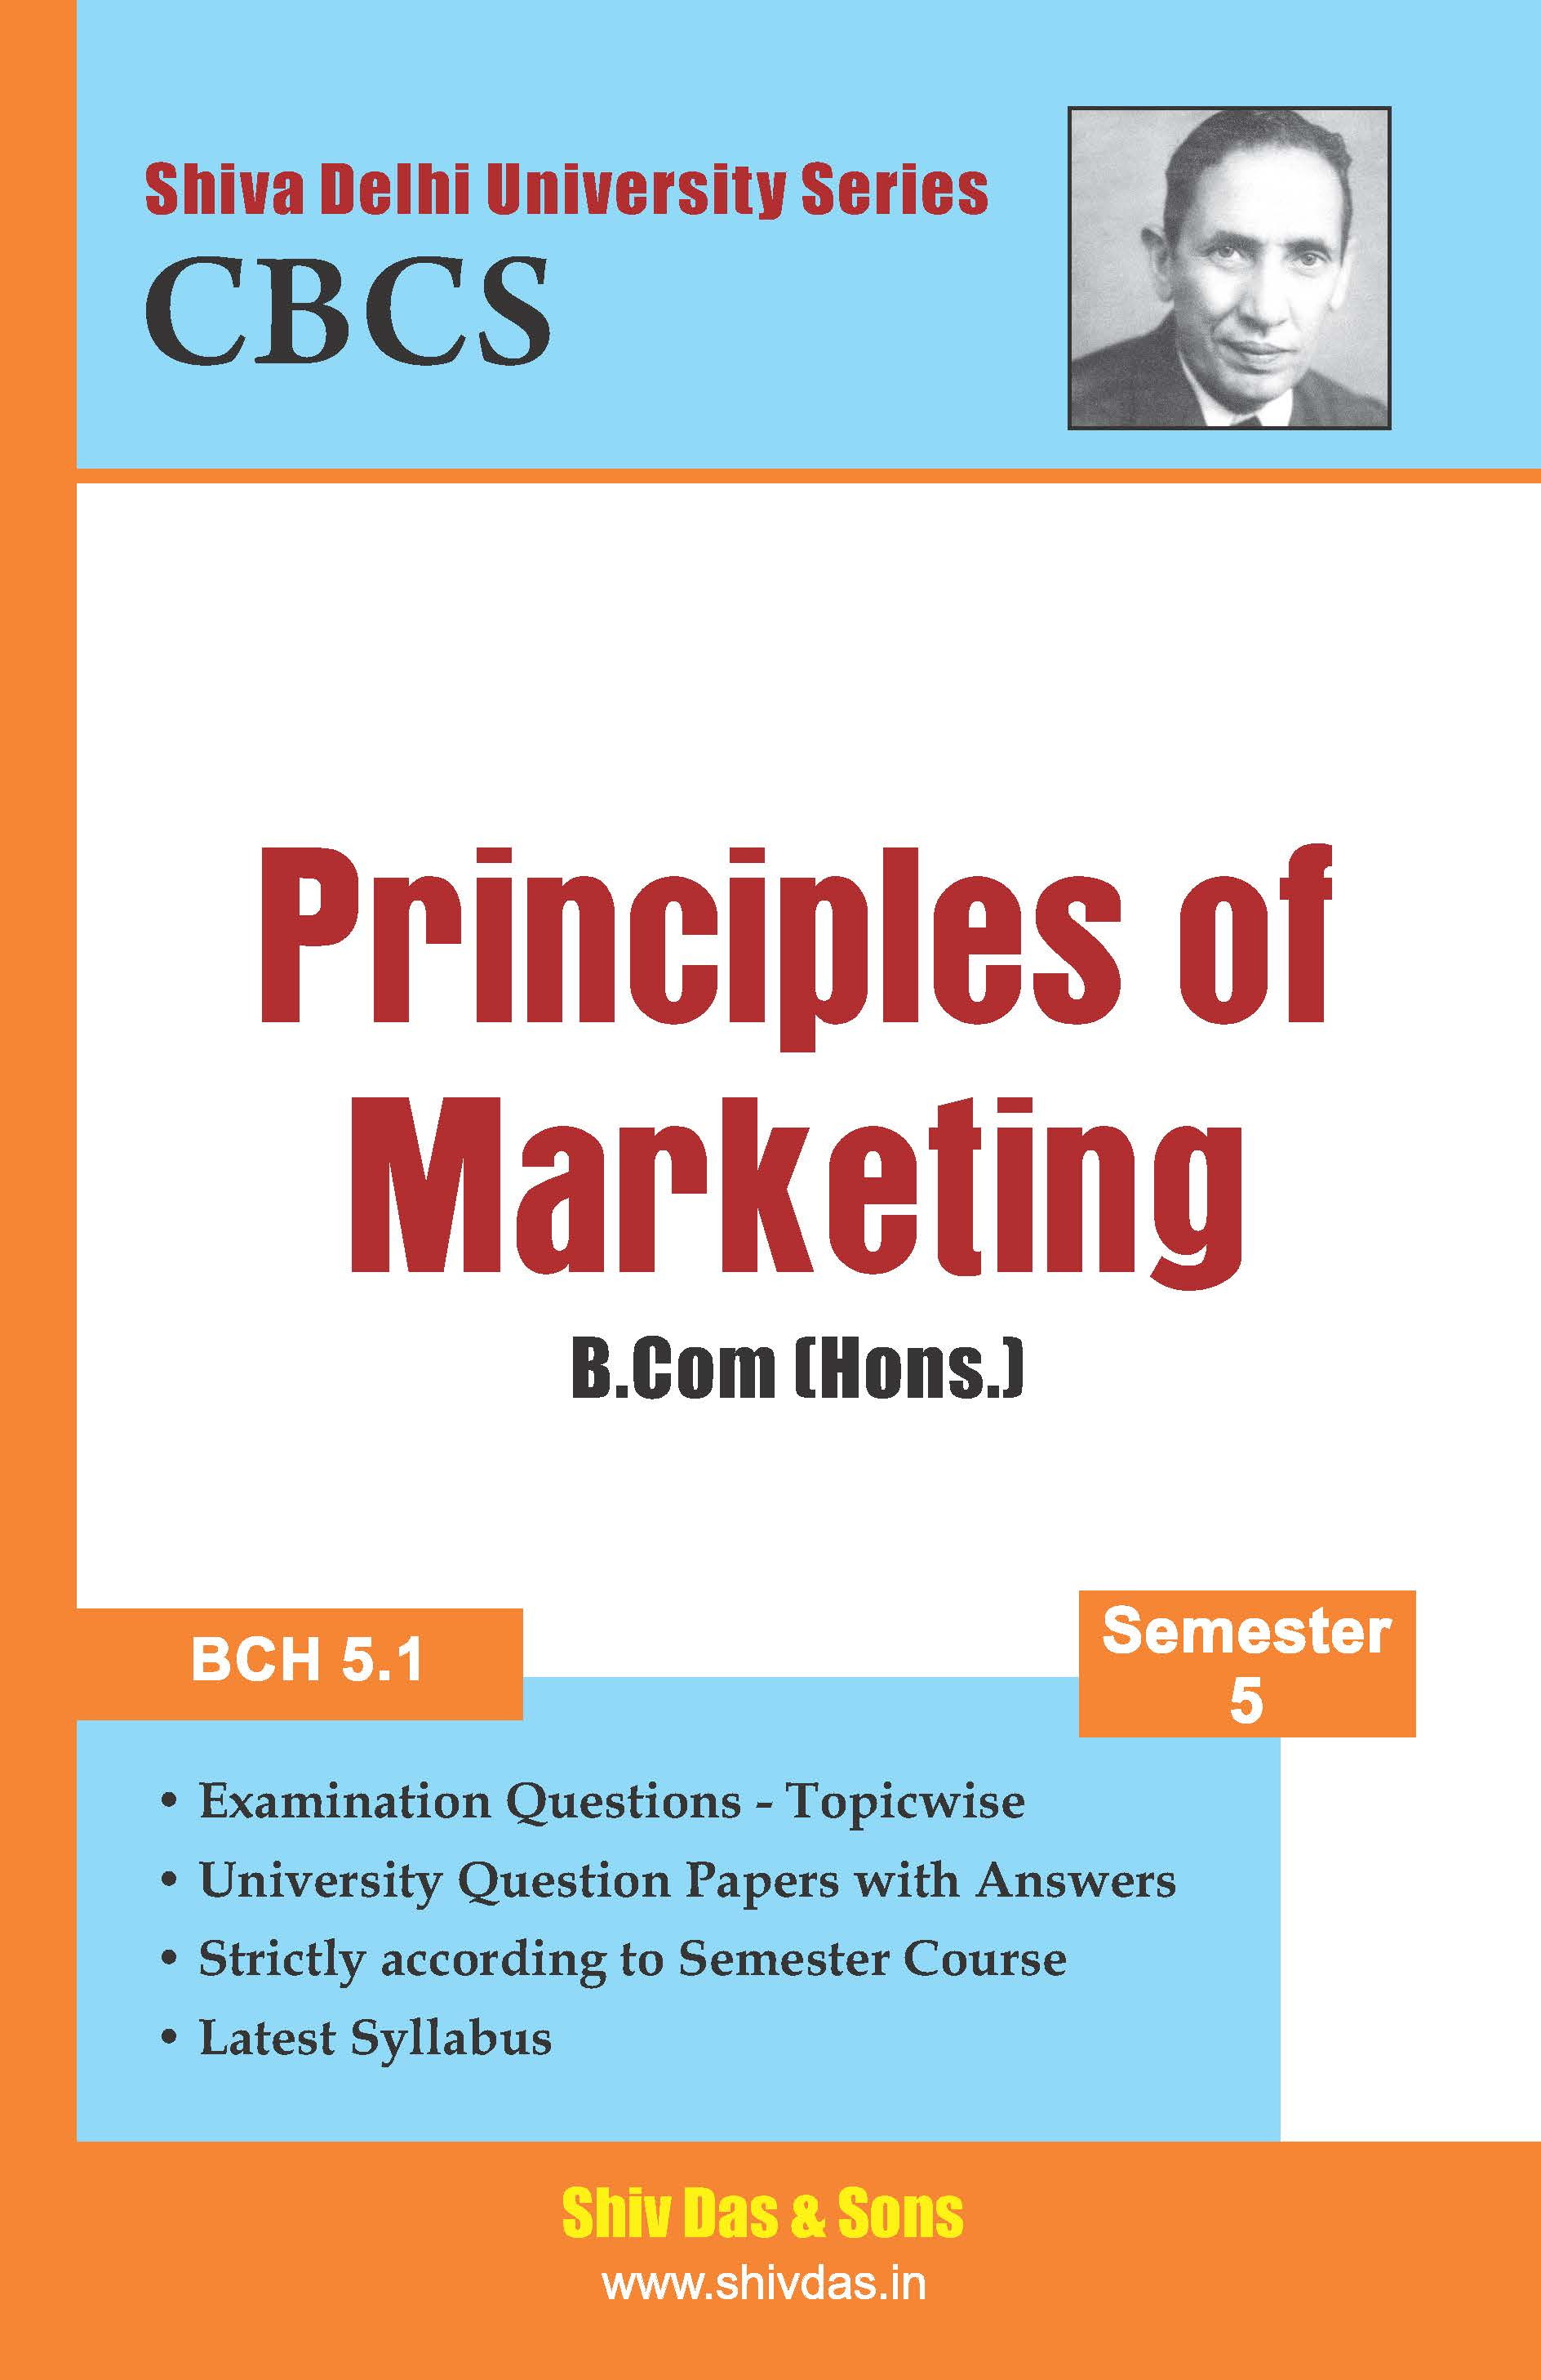 B.Com [Hons.] Semester-5 Principles of Marketing